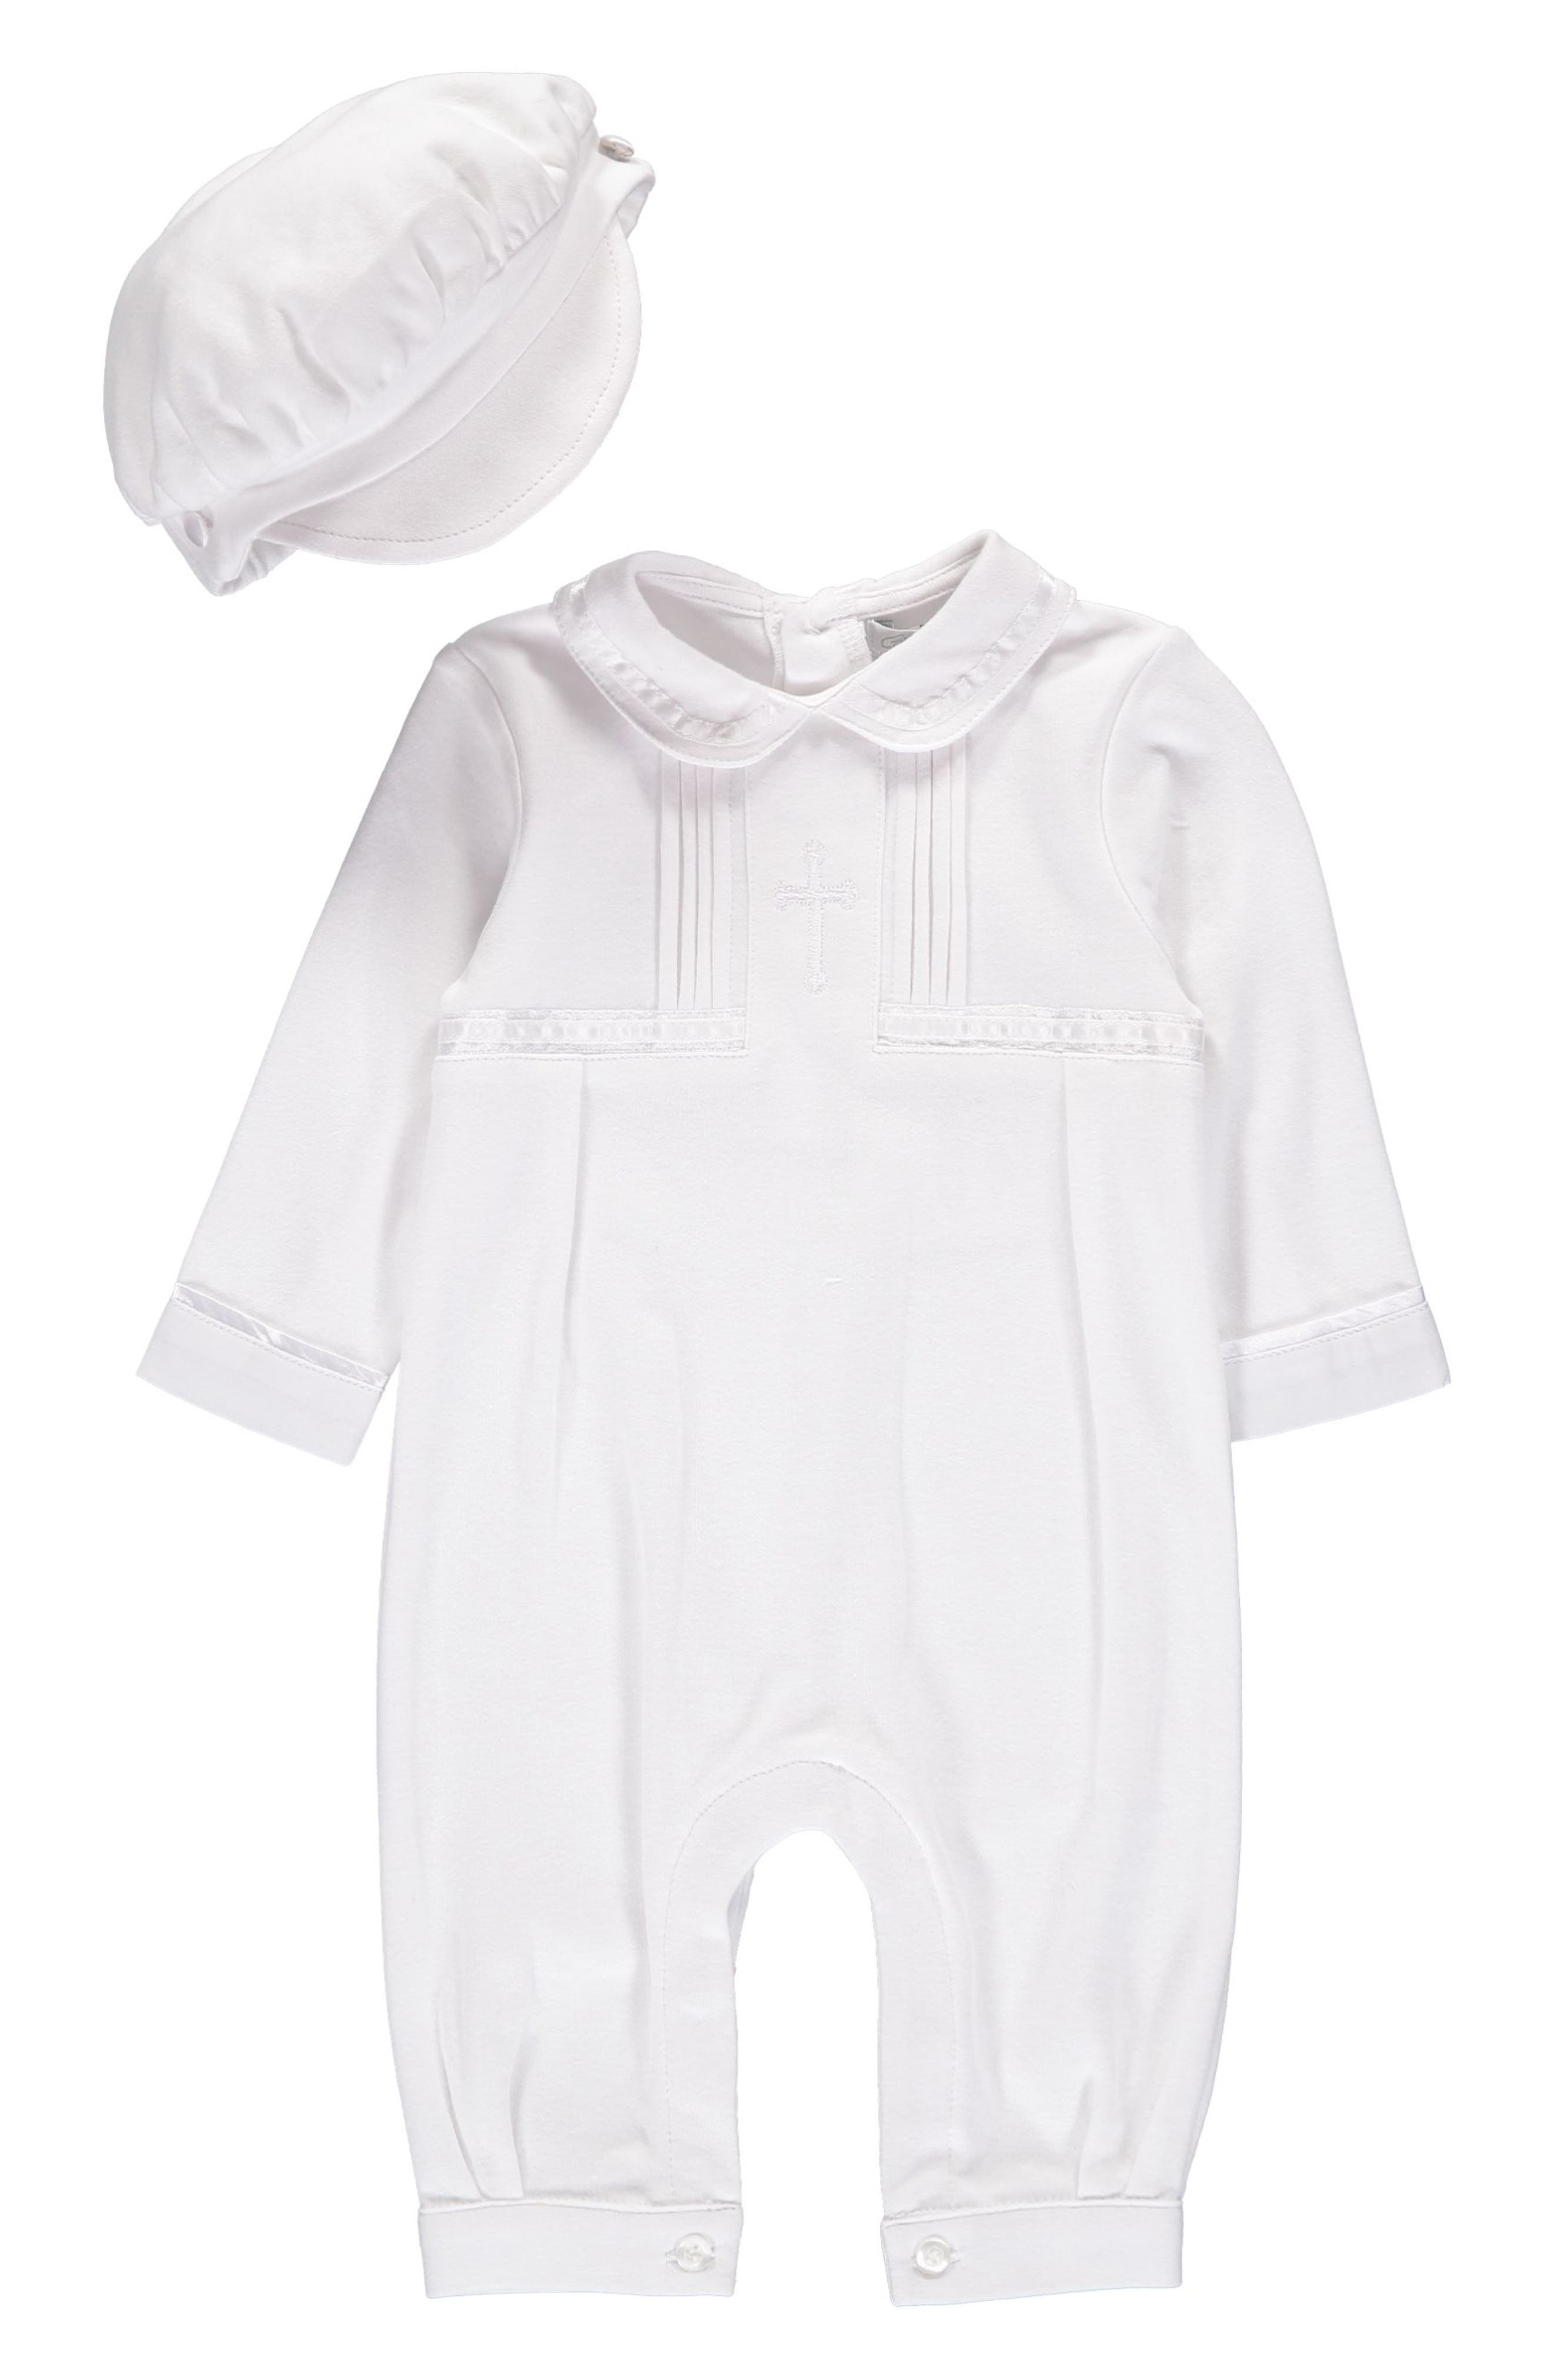 CARRIAGE BOUTIQUE, Cross Embroidered Christening Romper & Newsboy Cap Set, Main thumbnail 1, color, 100